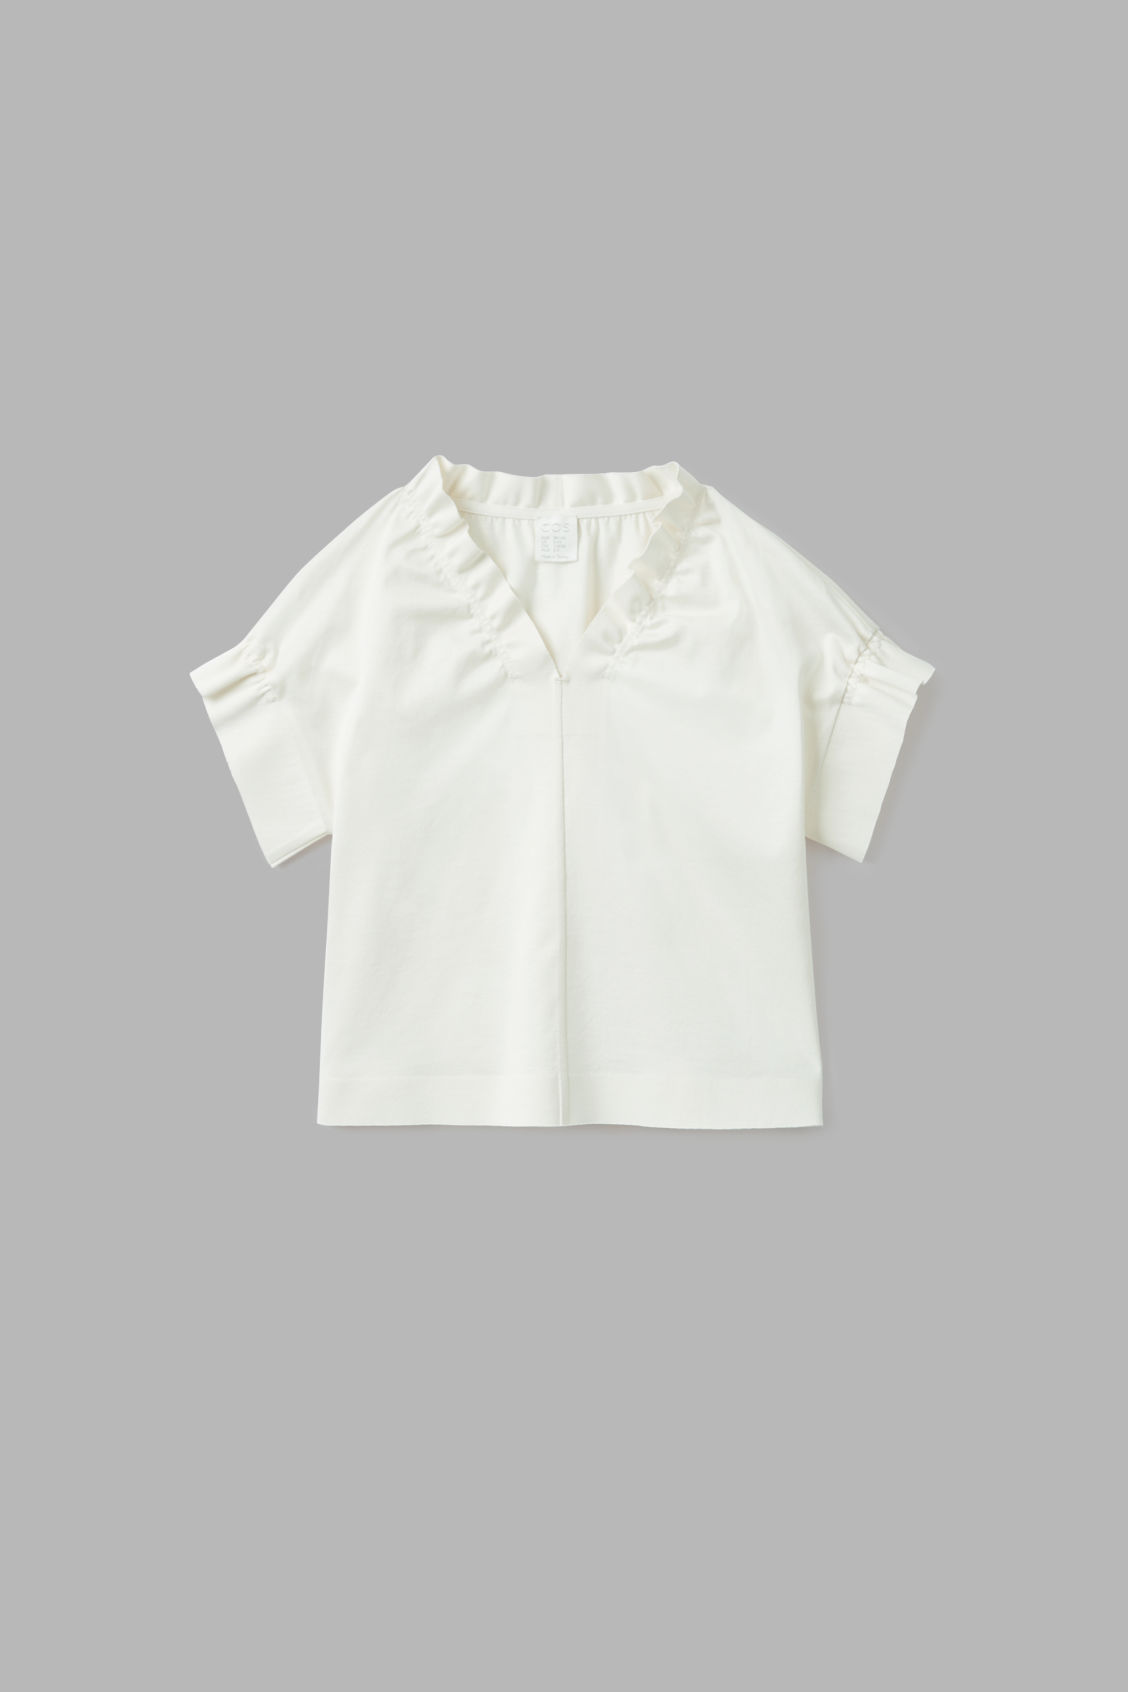 Cos Kids' Ruched-trimmed Top In White